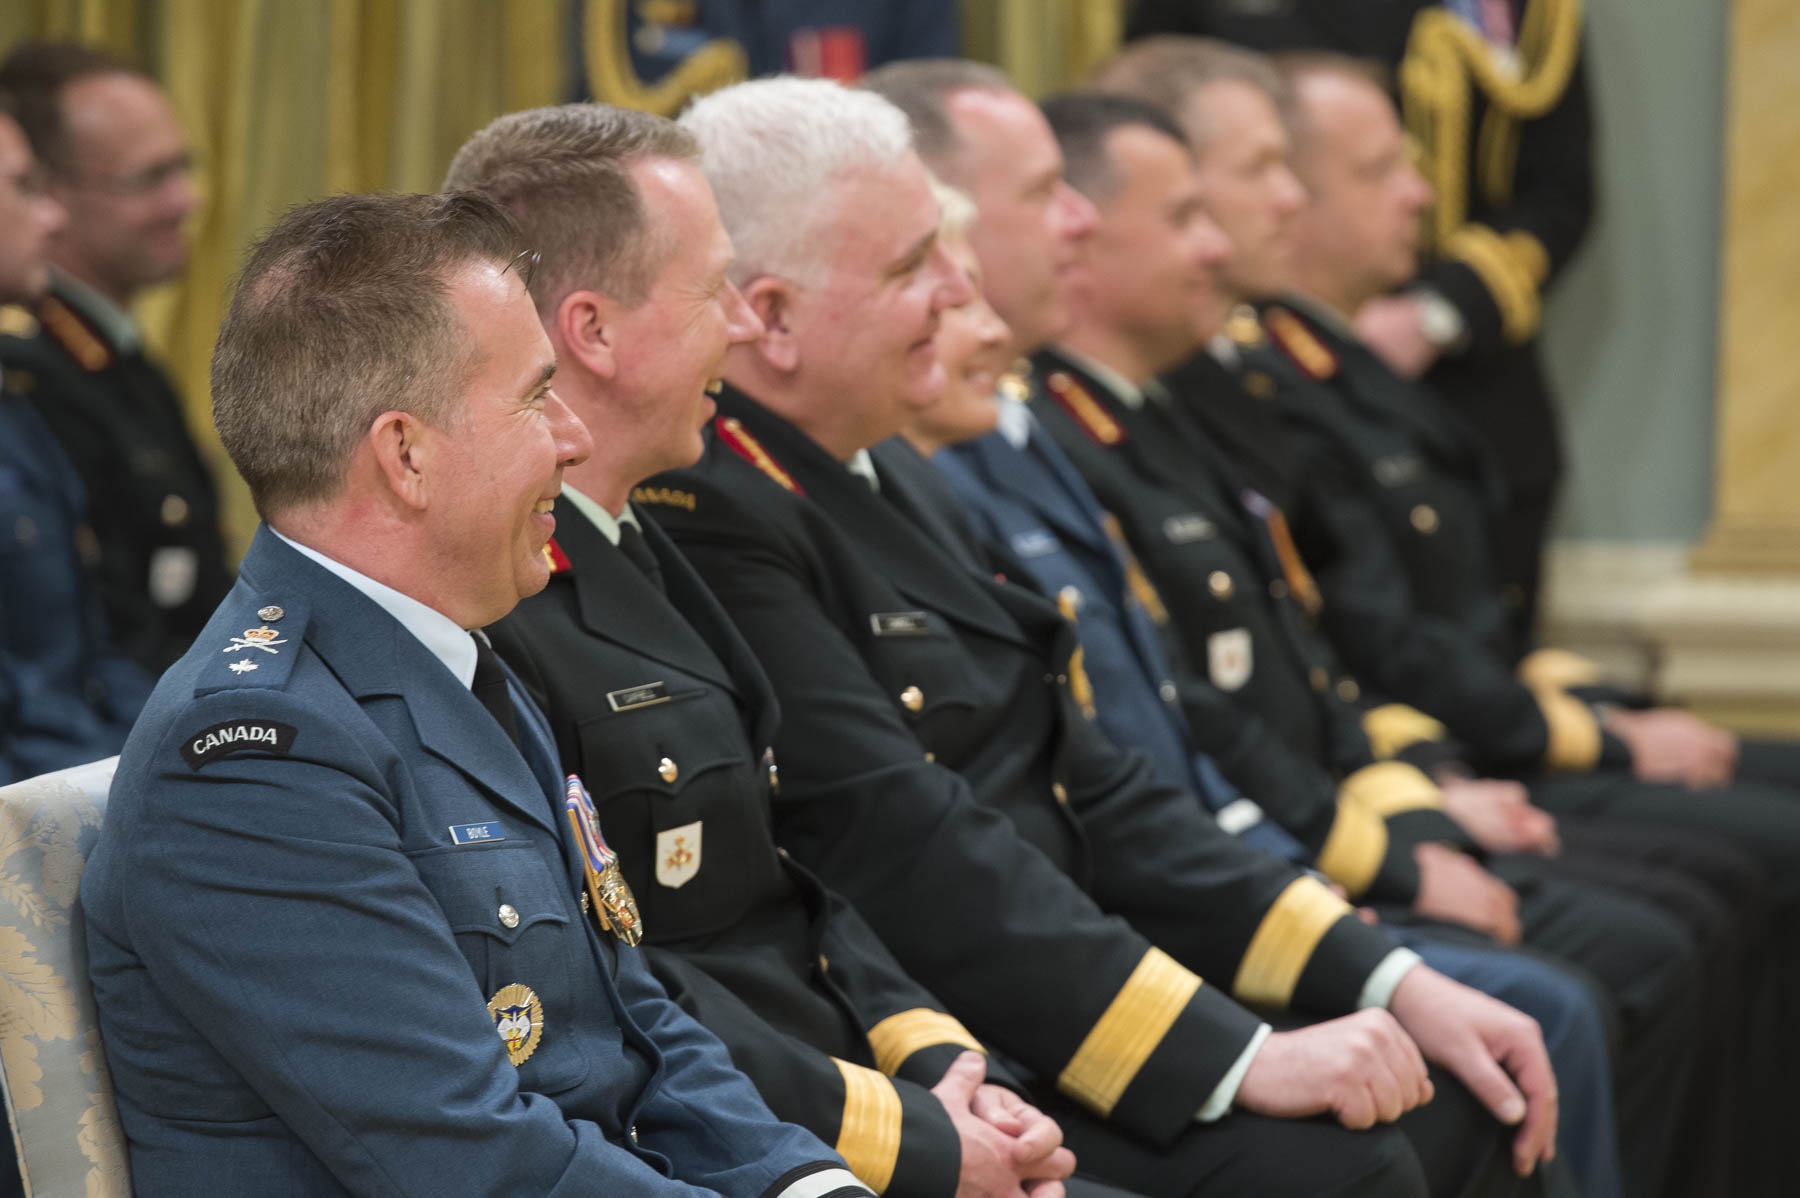 The Armed Forces Council is the senior military body of the Canadian Forces.